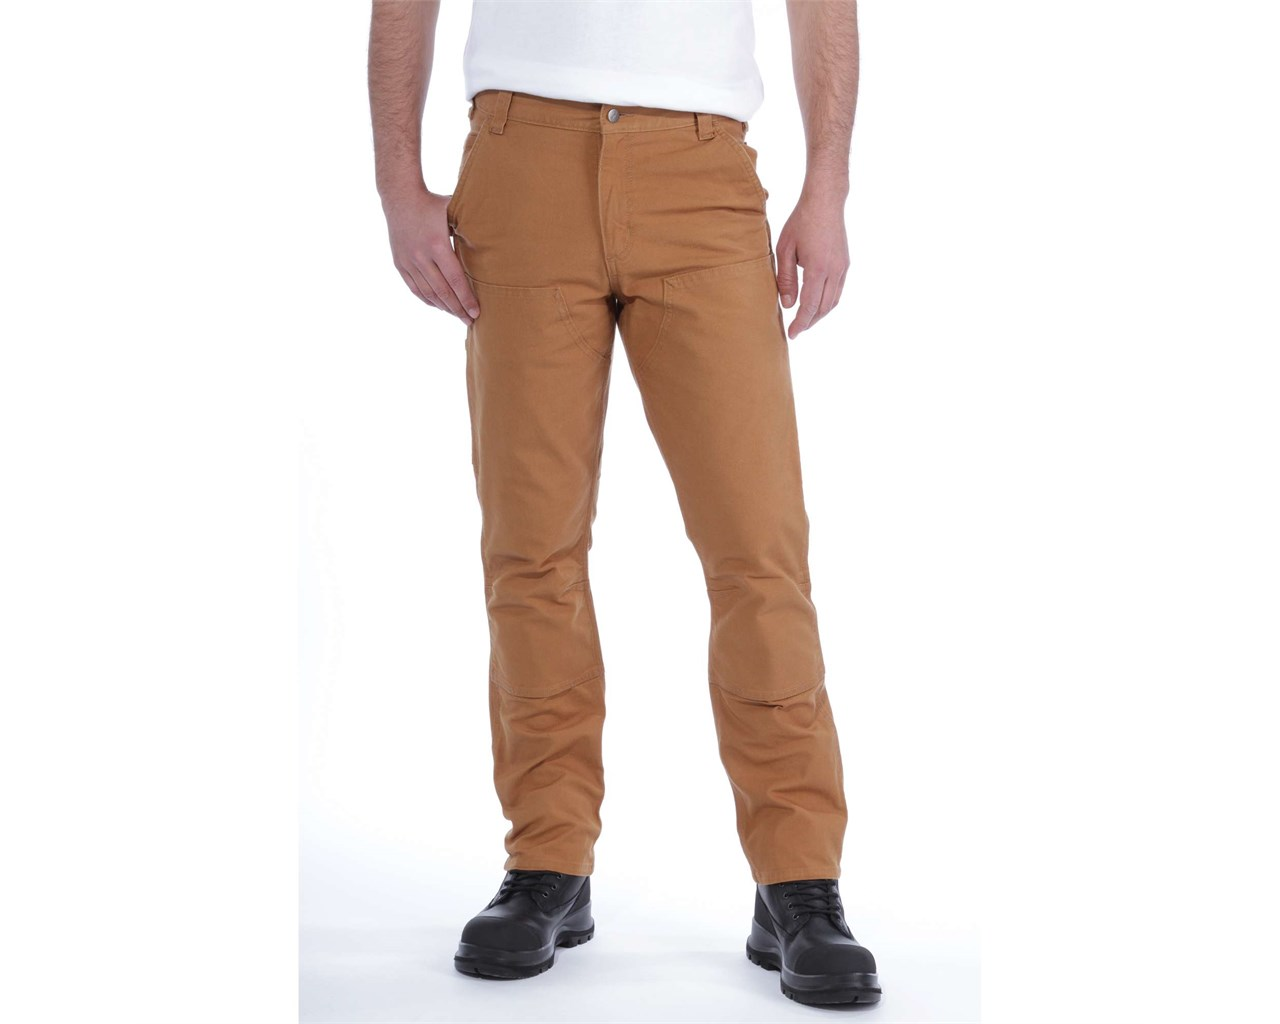 Carhartt Stretch Duck Double Front Trousers, Carhartt Brown, W36/L32